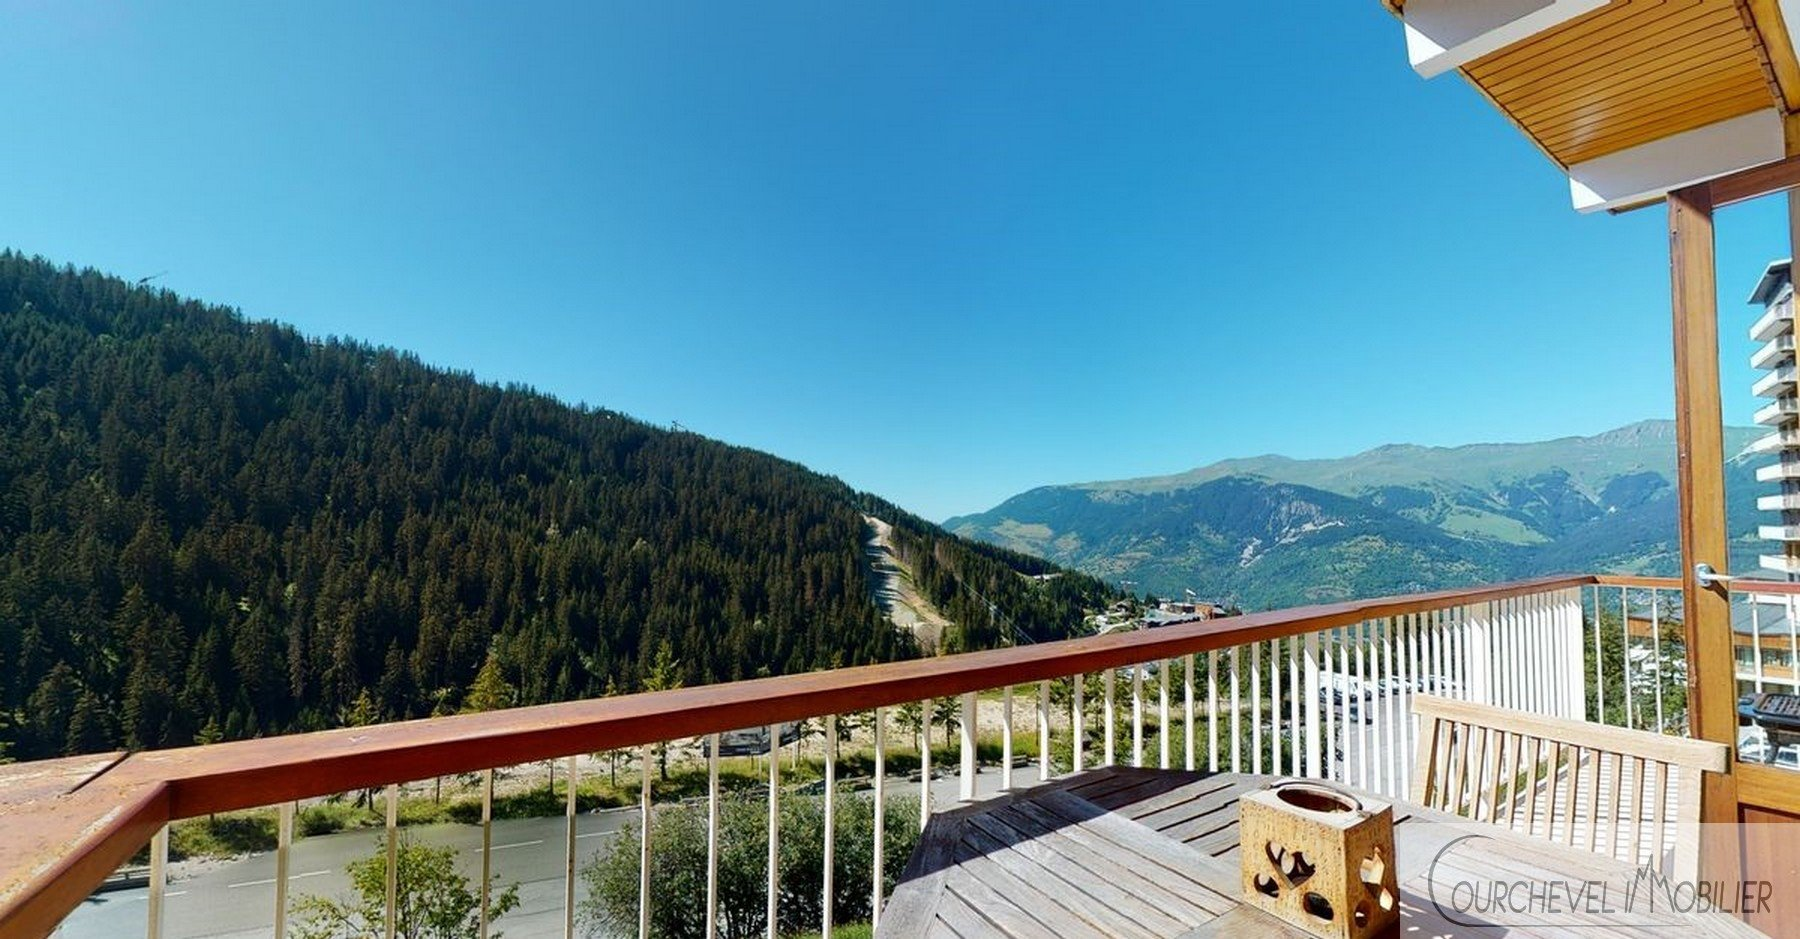 Sale Apartment - Courchevel Moriond 1650